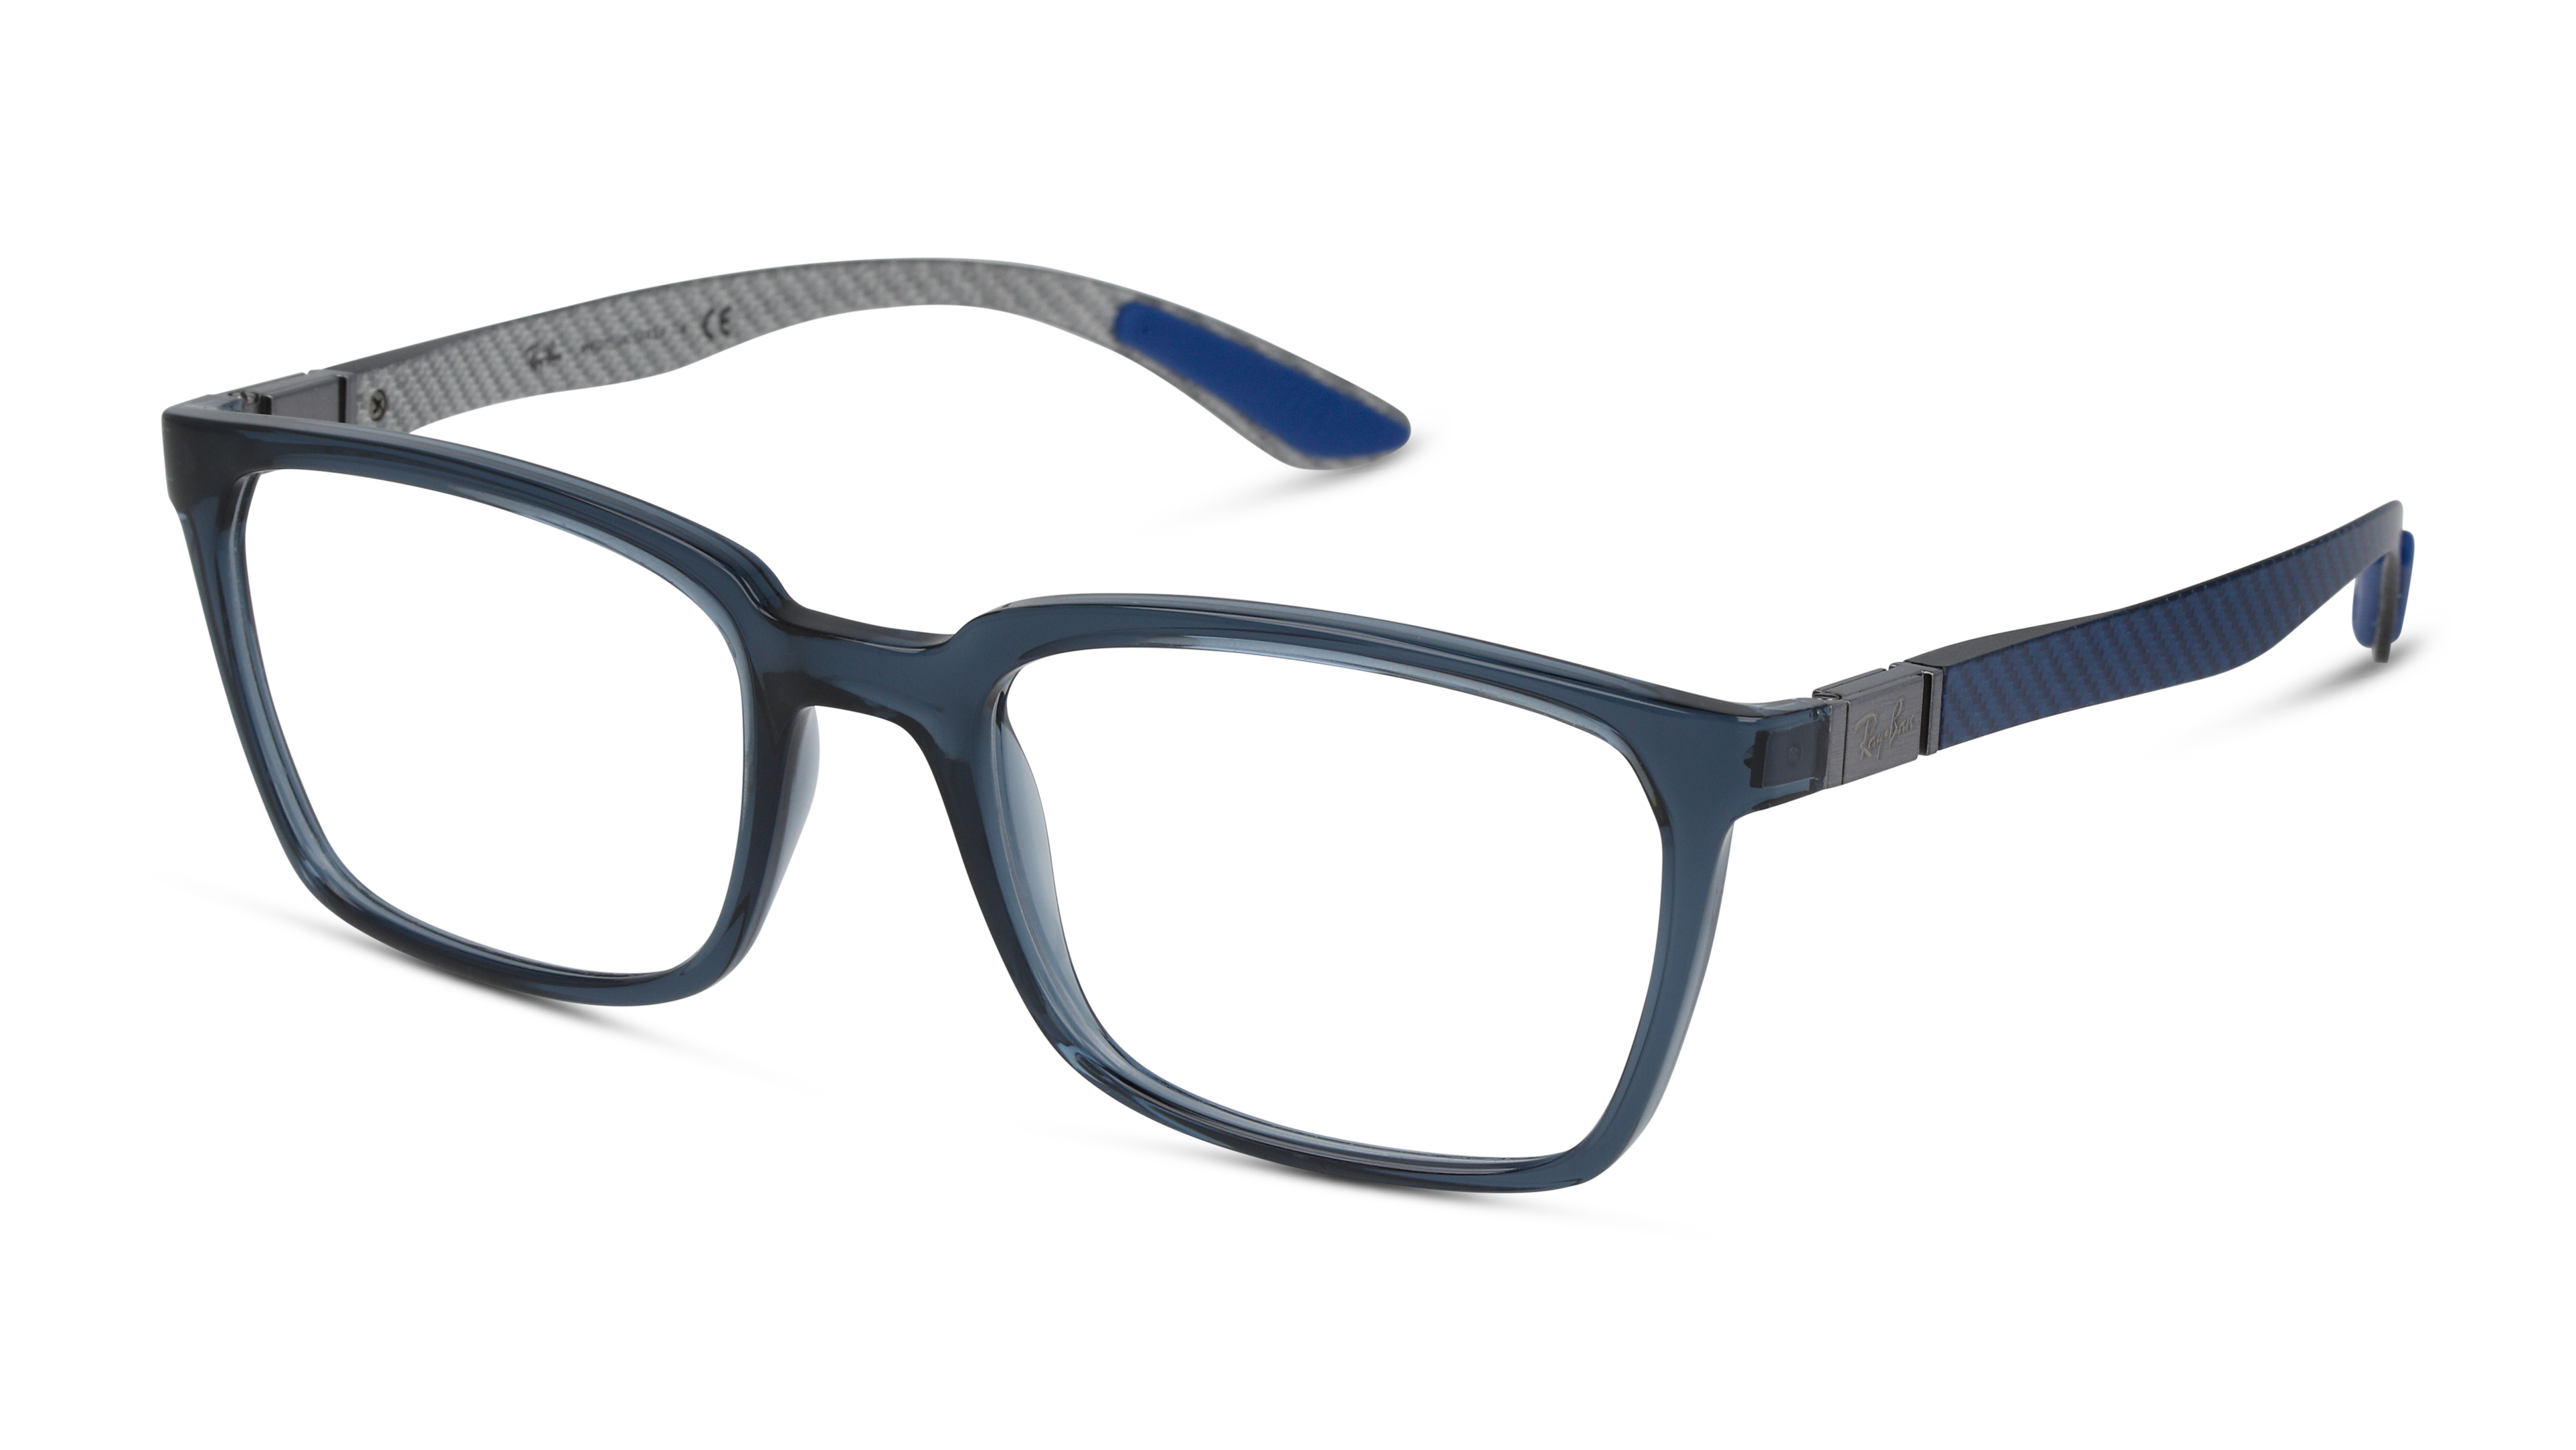 Angle_Left01 Ray-Ban 0RX8906/8060/0019/145 Transparent